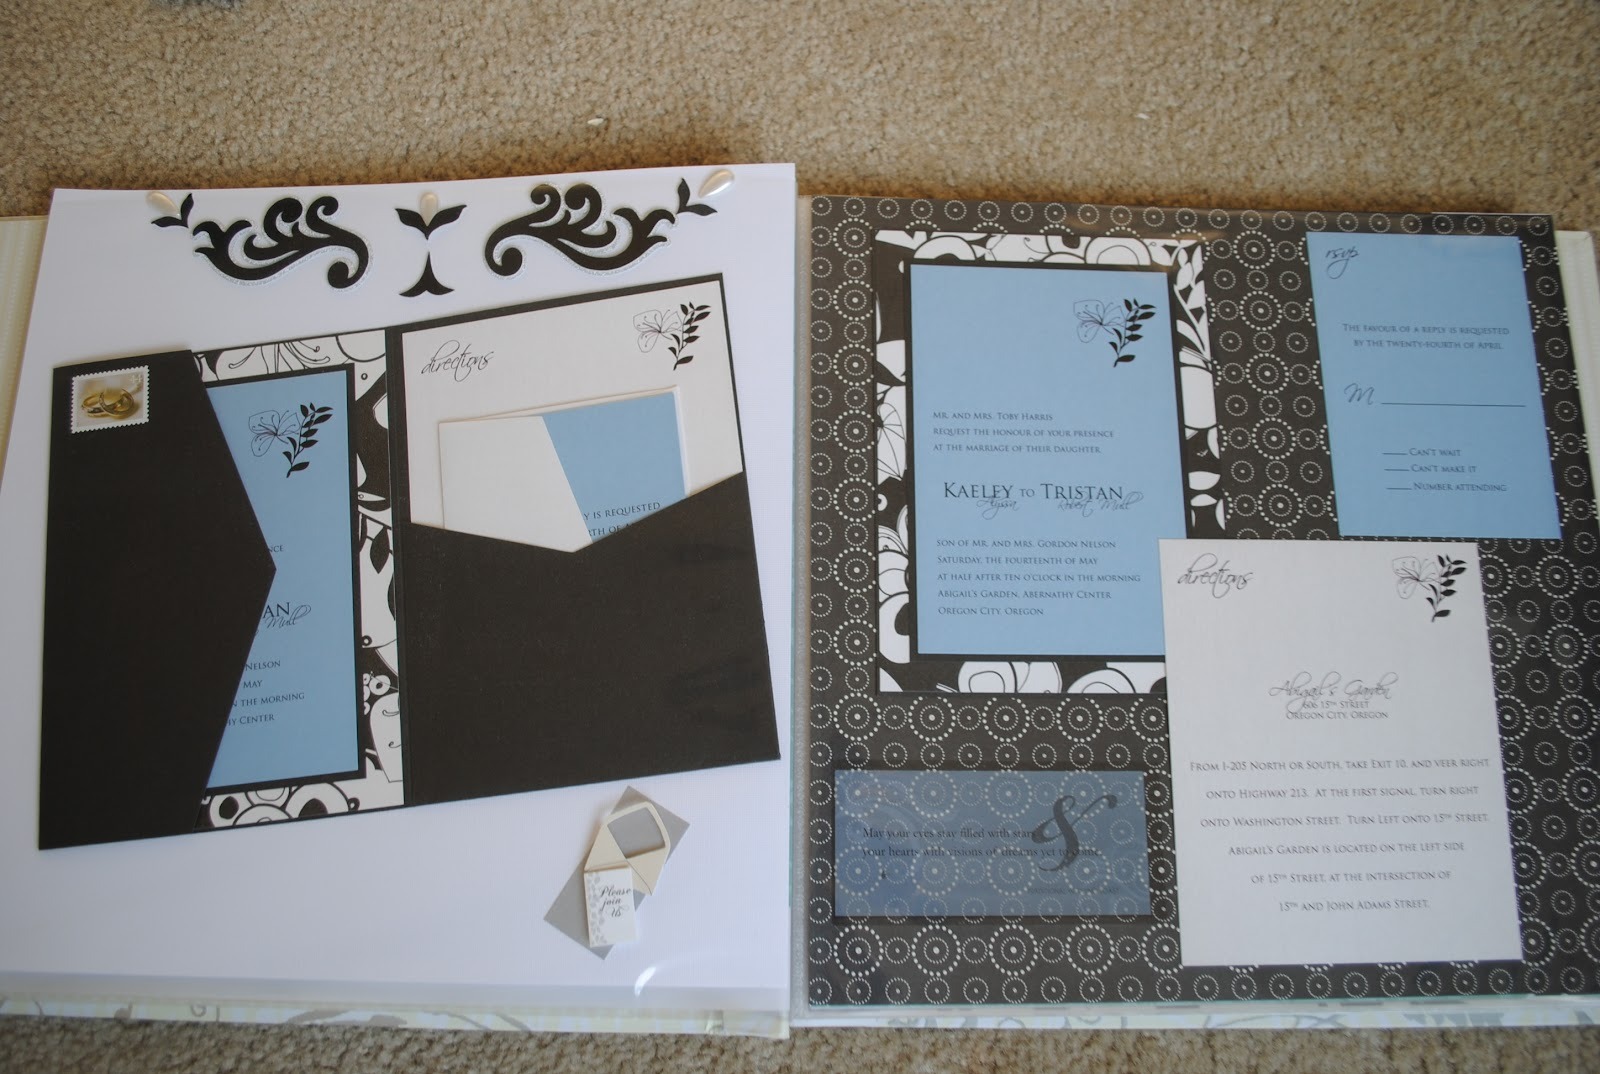 d wedding scrapbook Wedding scrapbook page ideas Wedding Scrapbook Ideas Layouts The Quality Of The Photos Aren T